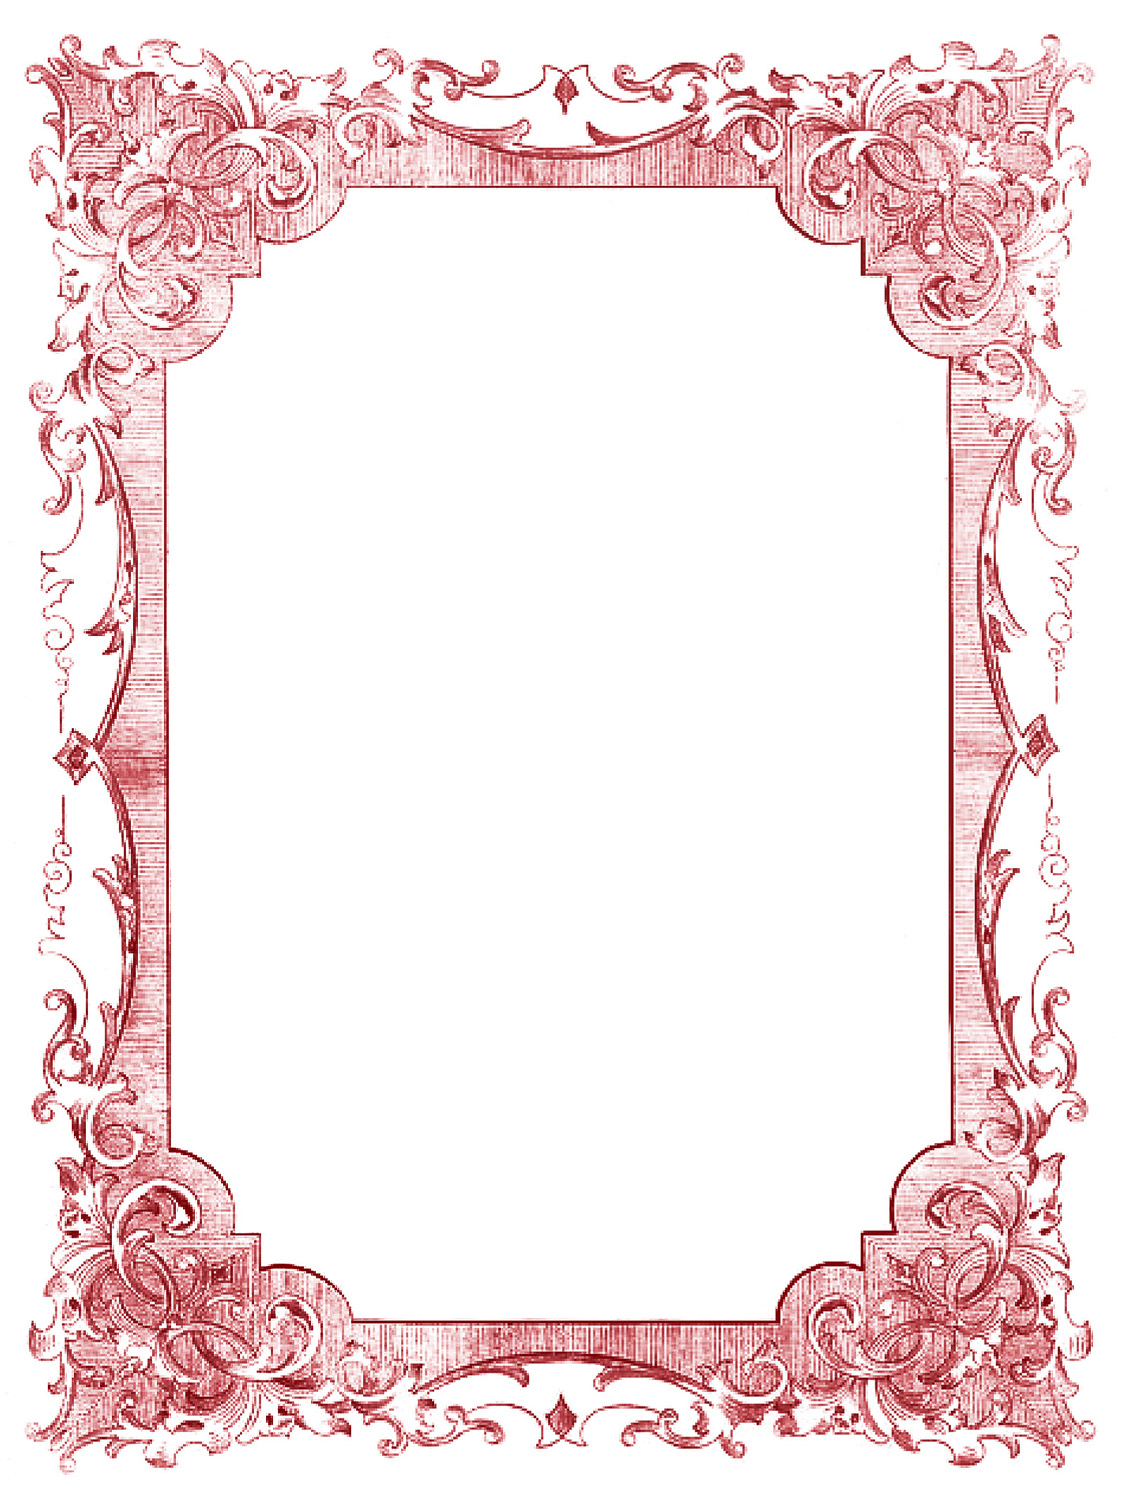 vintage clip art romantic frames christmas colors. Black Bedroom Furniture Sets. Home Design Ideas